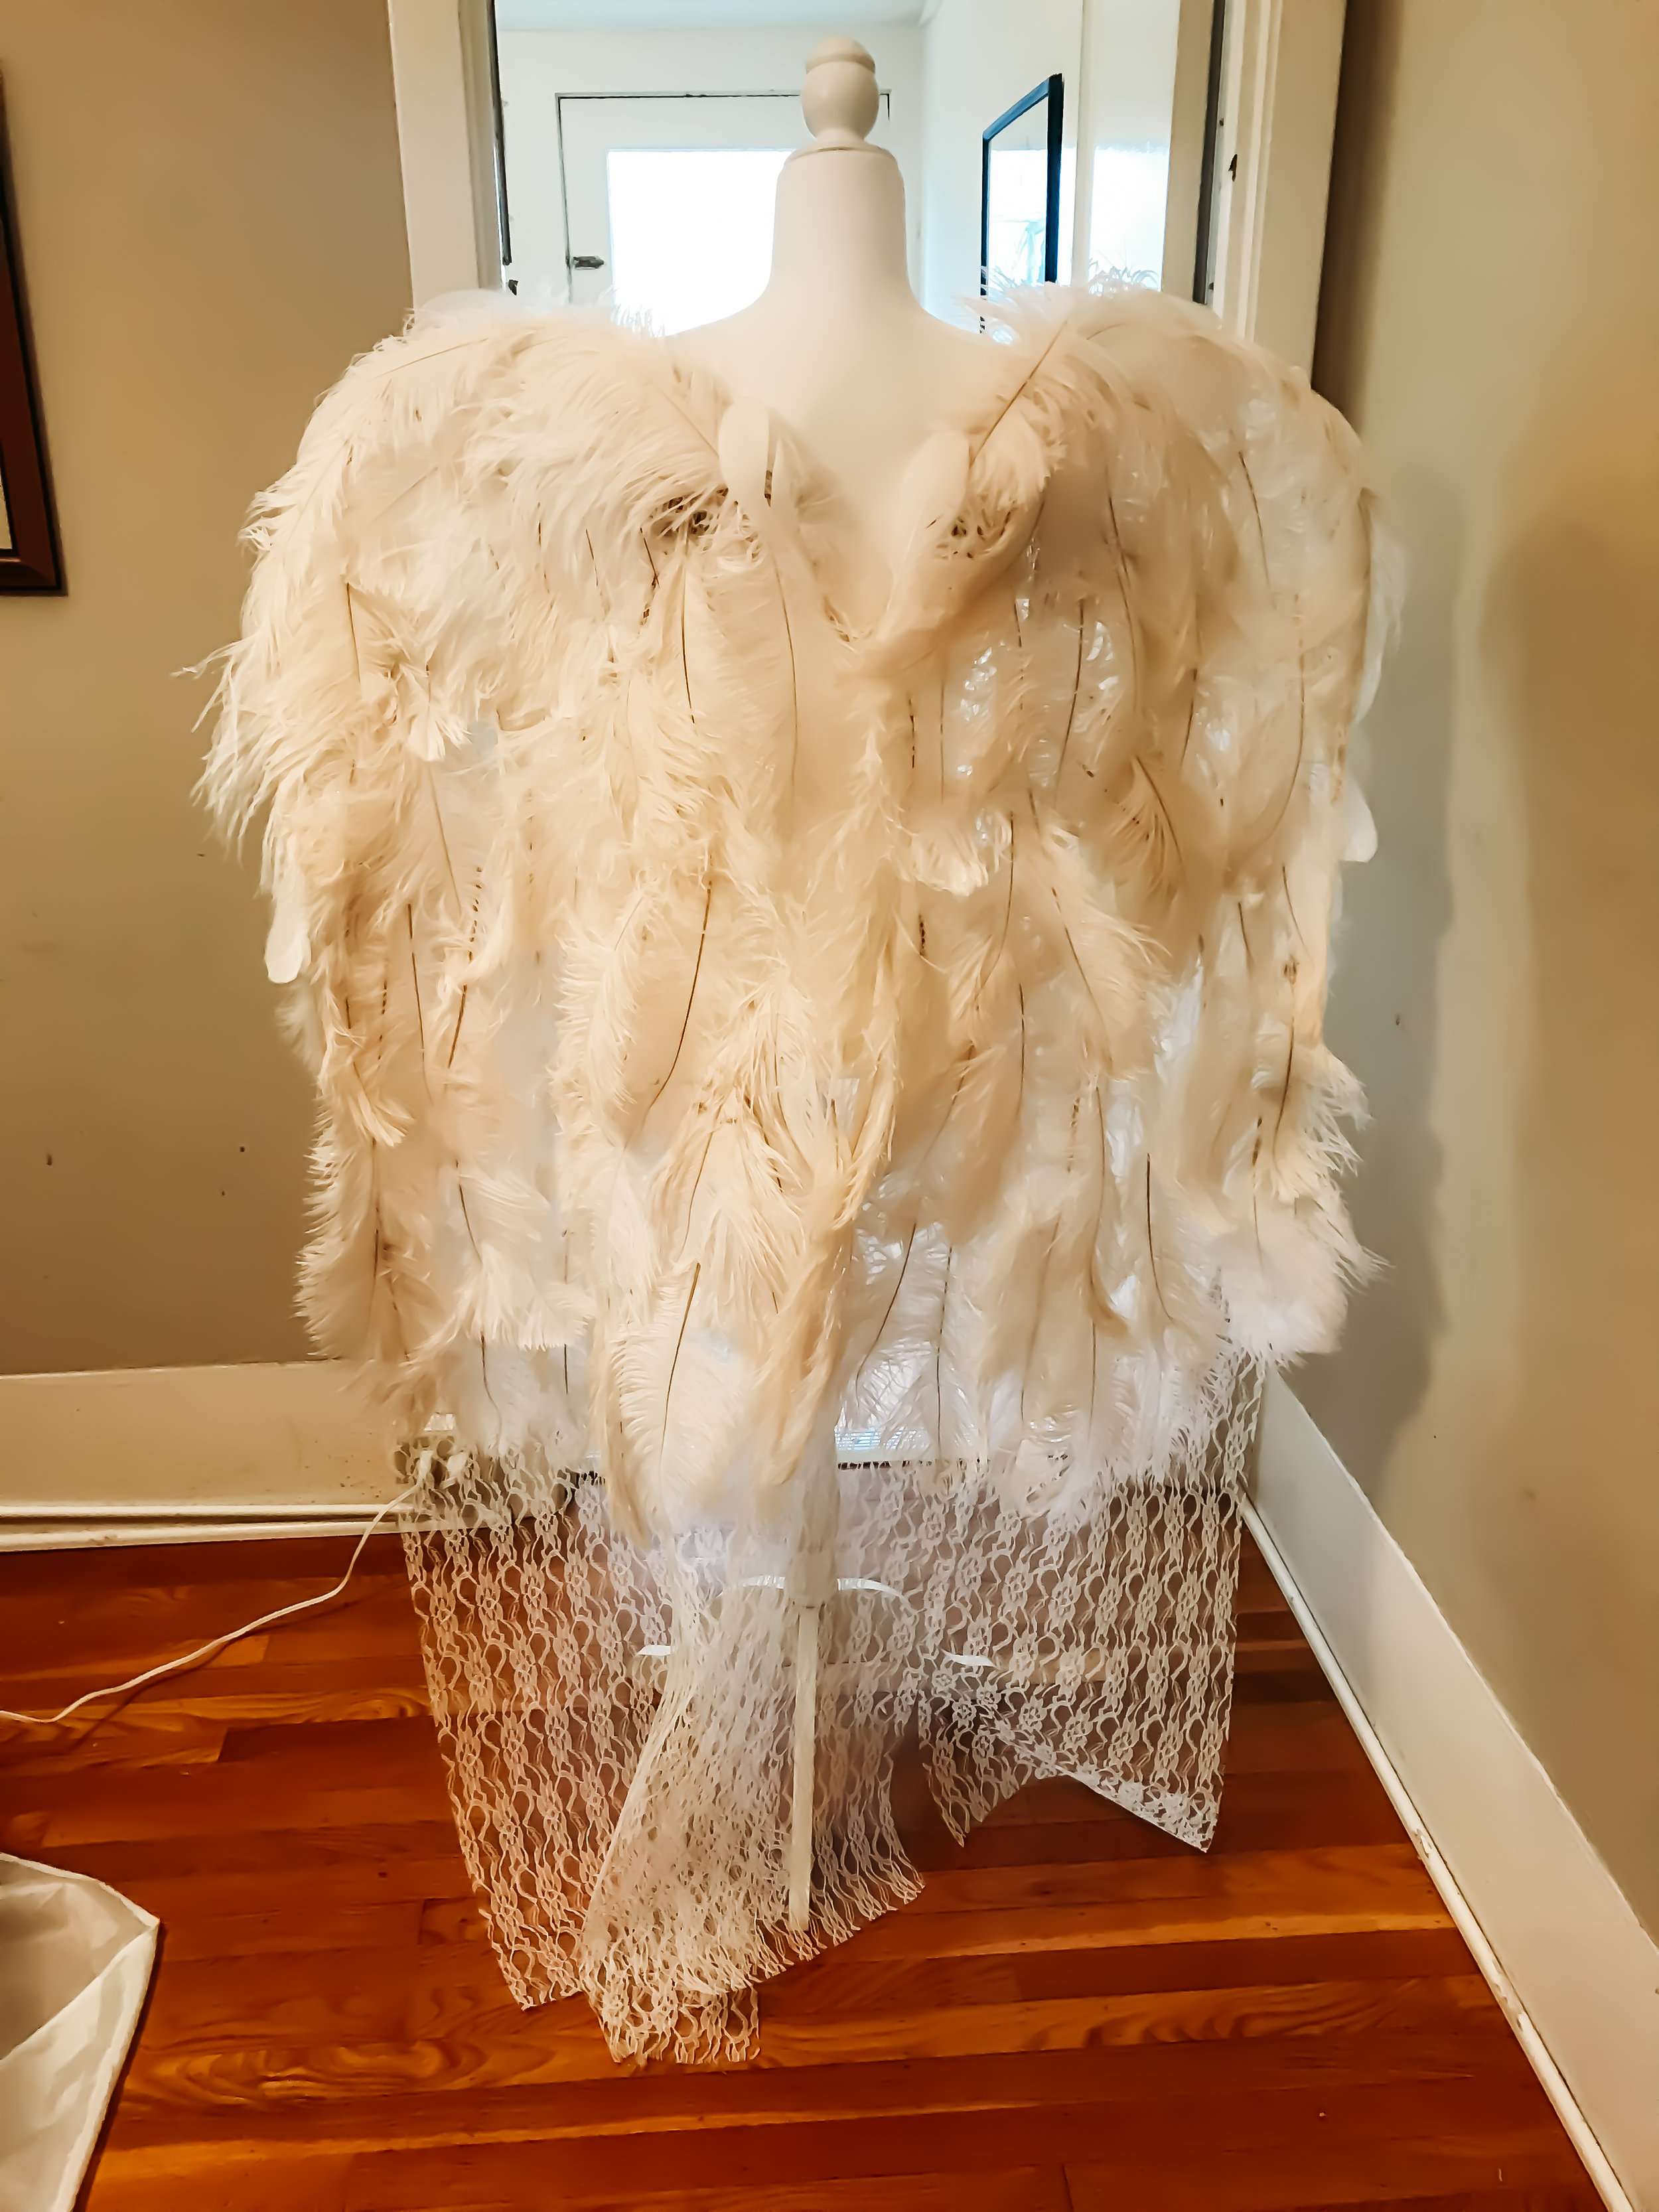 Just the ostrich feathers - bones showing